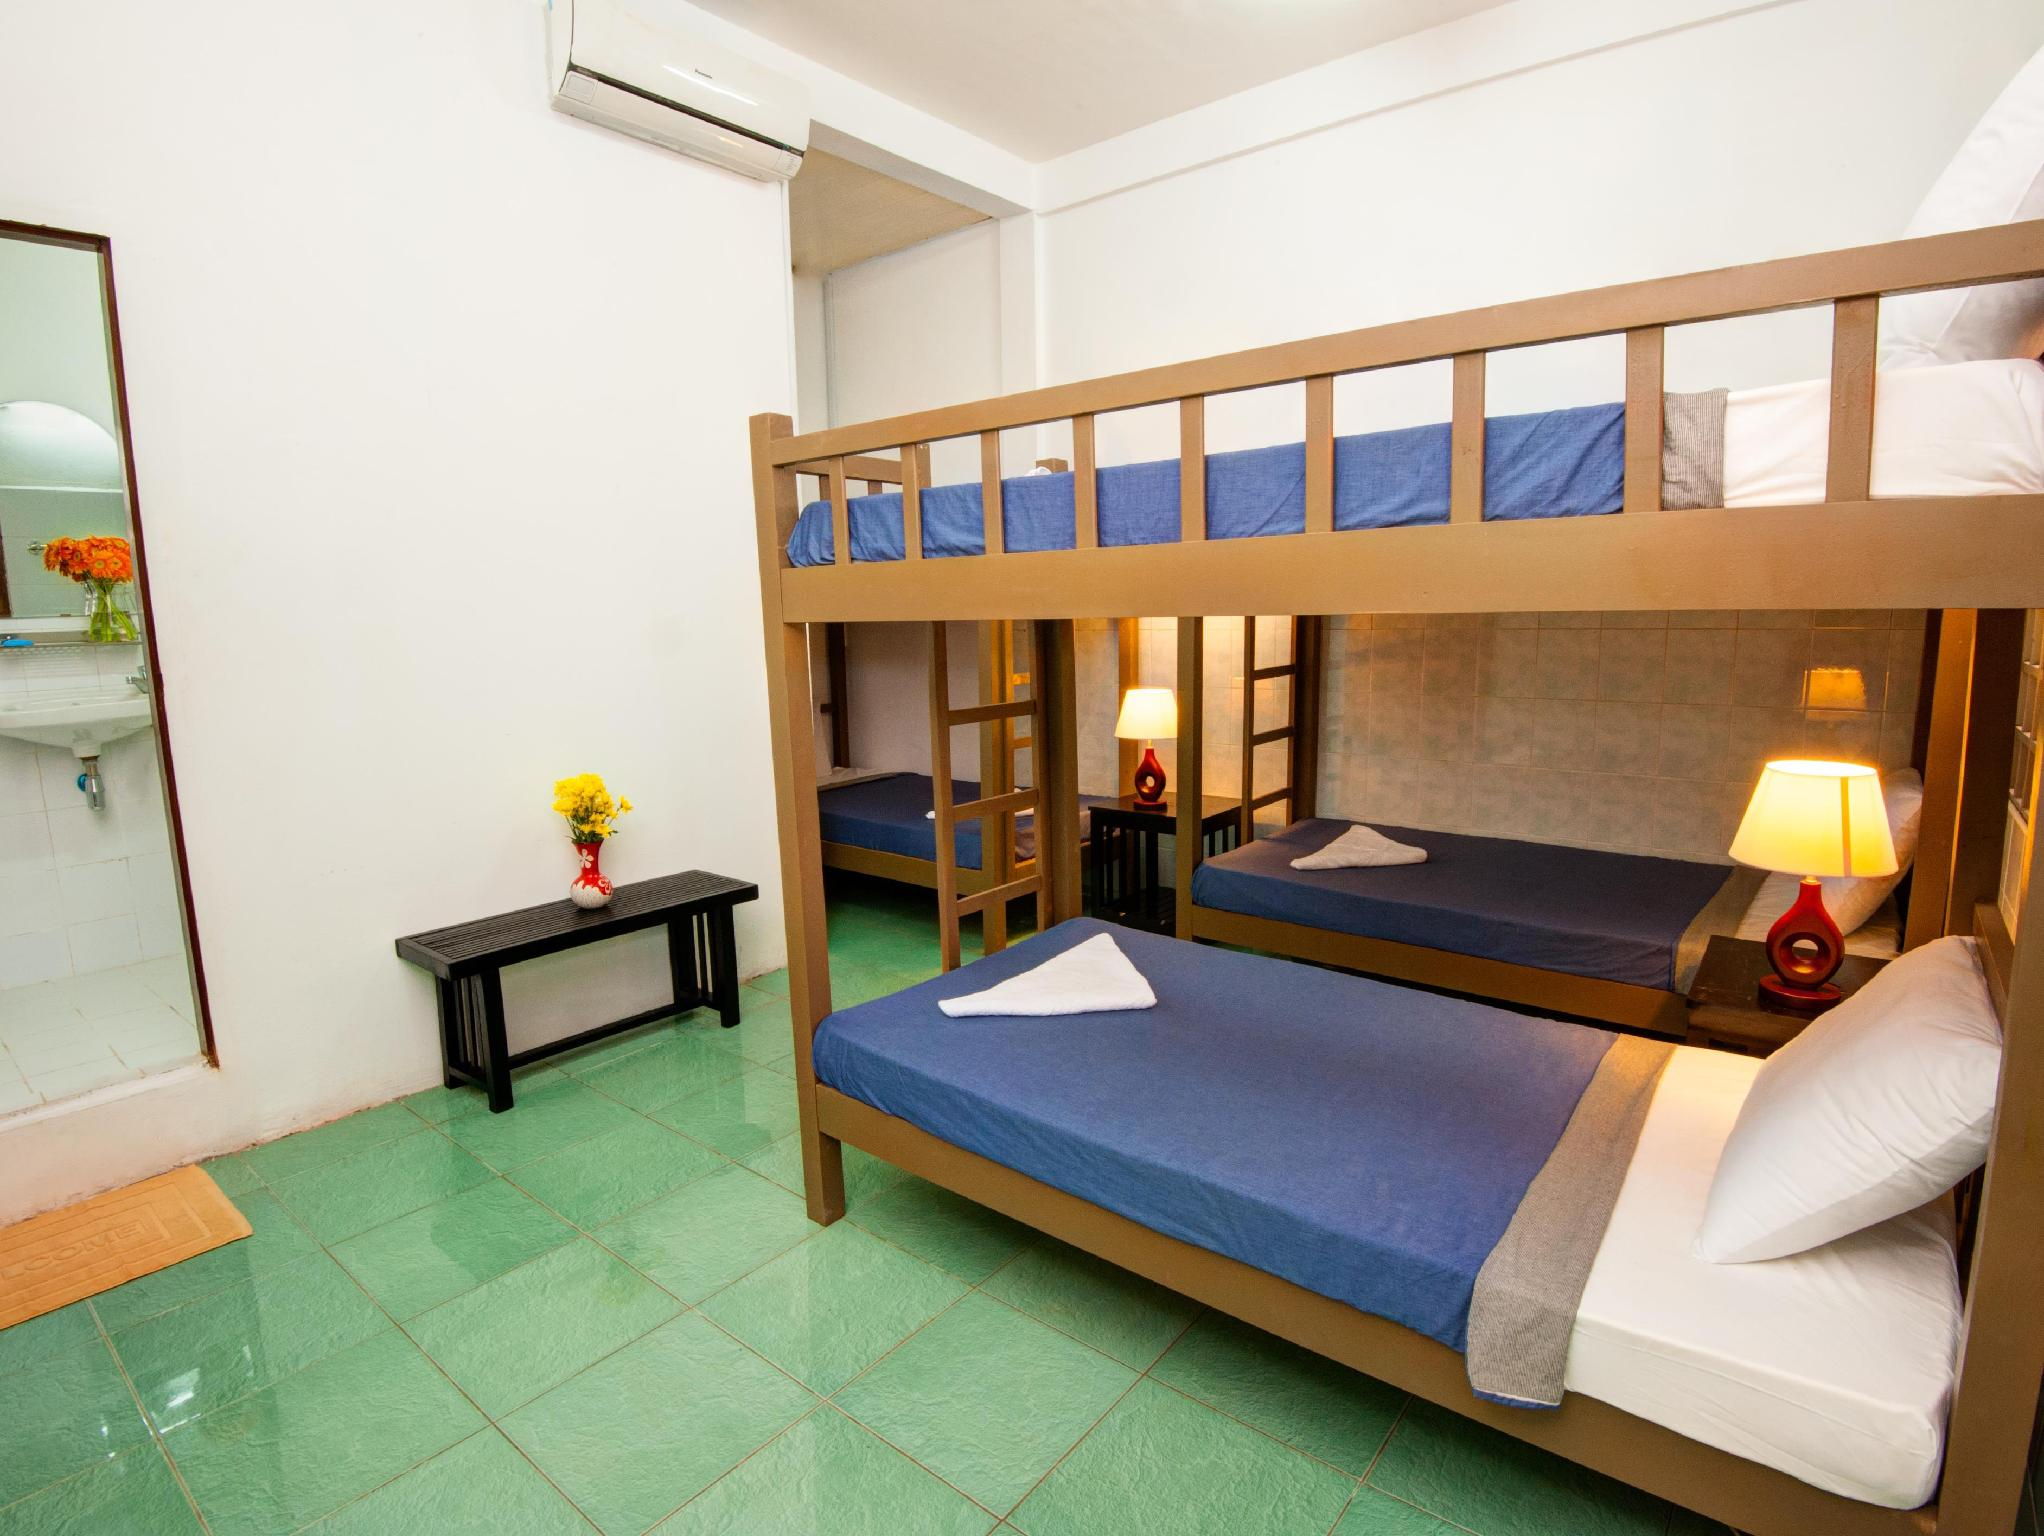 Seng i 6-sengs blandet sovesal (1 Person in 6-Bed Dormitory - Mixed)